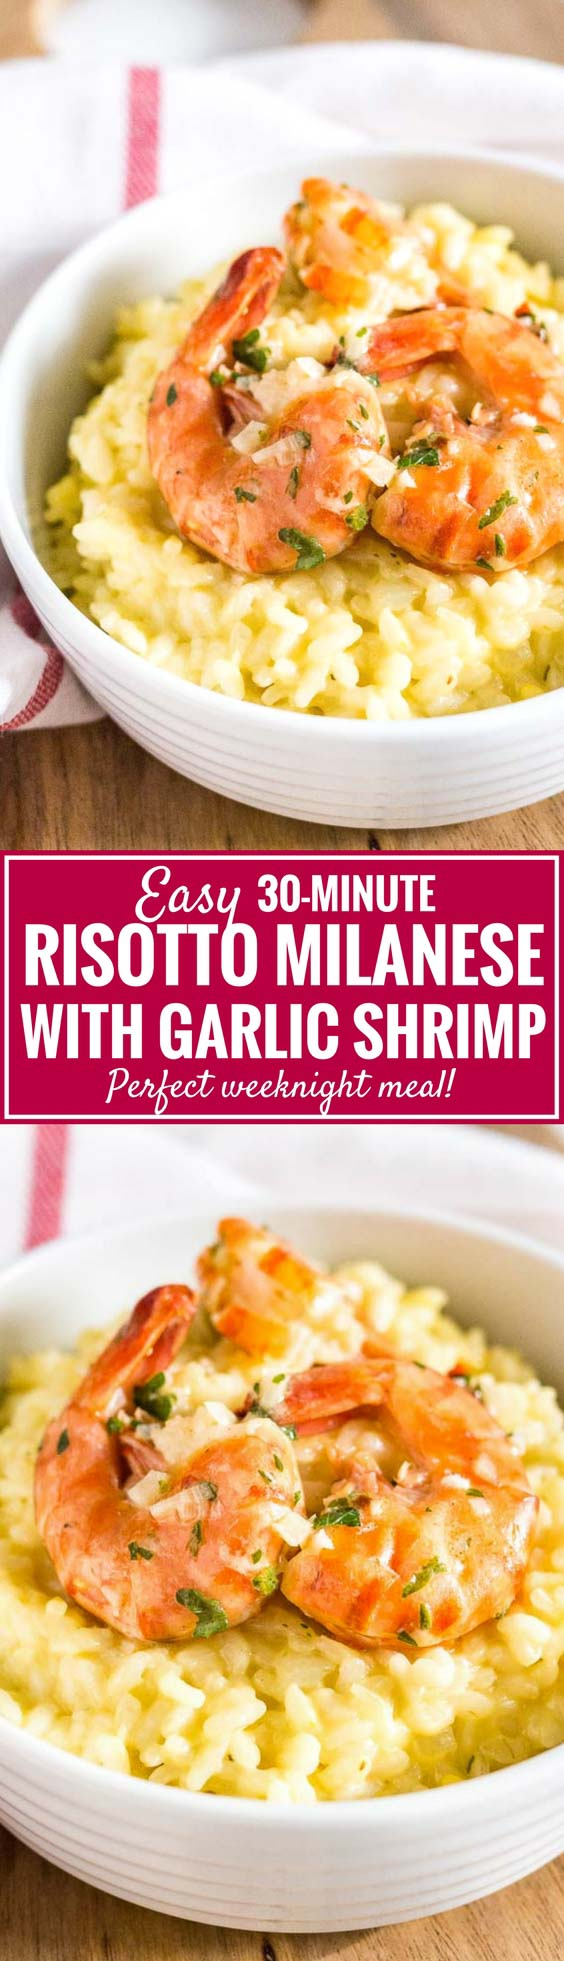 Saffron Shrimp Risotto is really easy to make, super creamy, and ready in only 30 minutes! A variation of the famous Risotto Milanese made with garlic shrimp that is quick enough to prepare for weeknight dinners but special enough for date night. #RisottoRecipes #RisottoMilanese #ShrimpRisotto #WeeknightDinners #30MinuteMeals